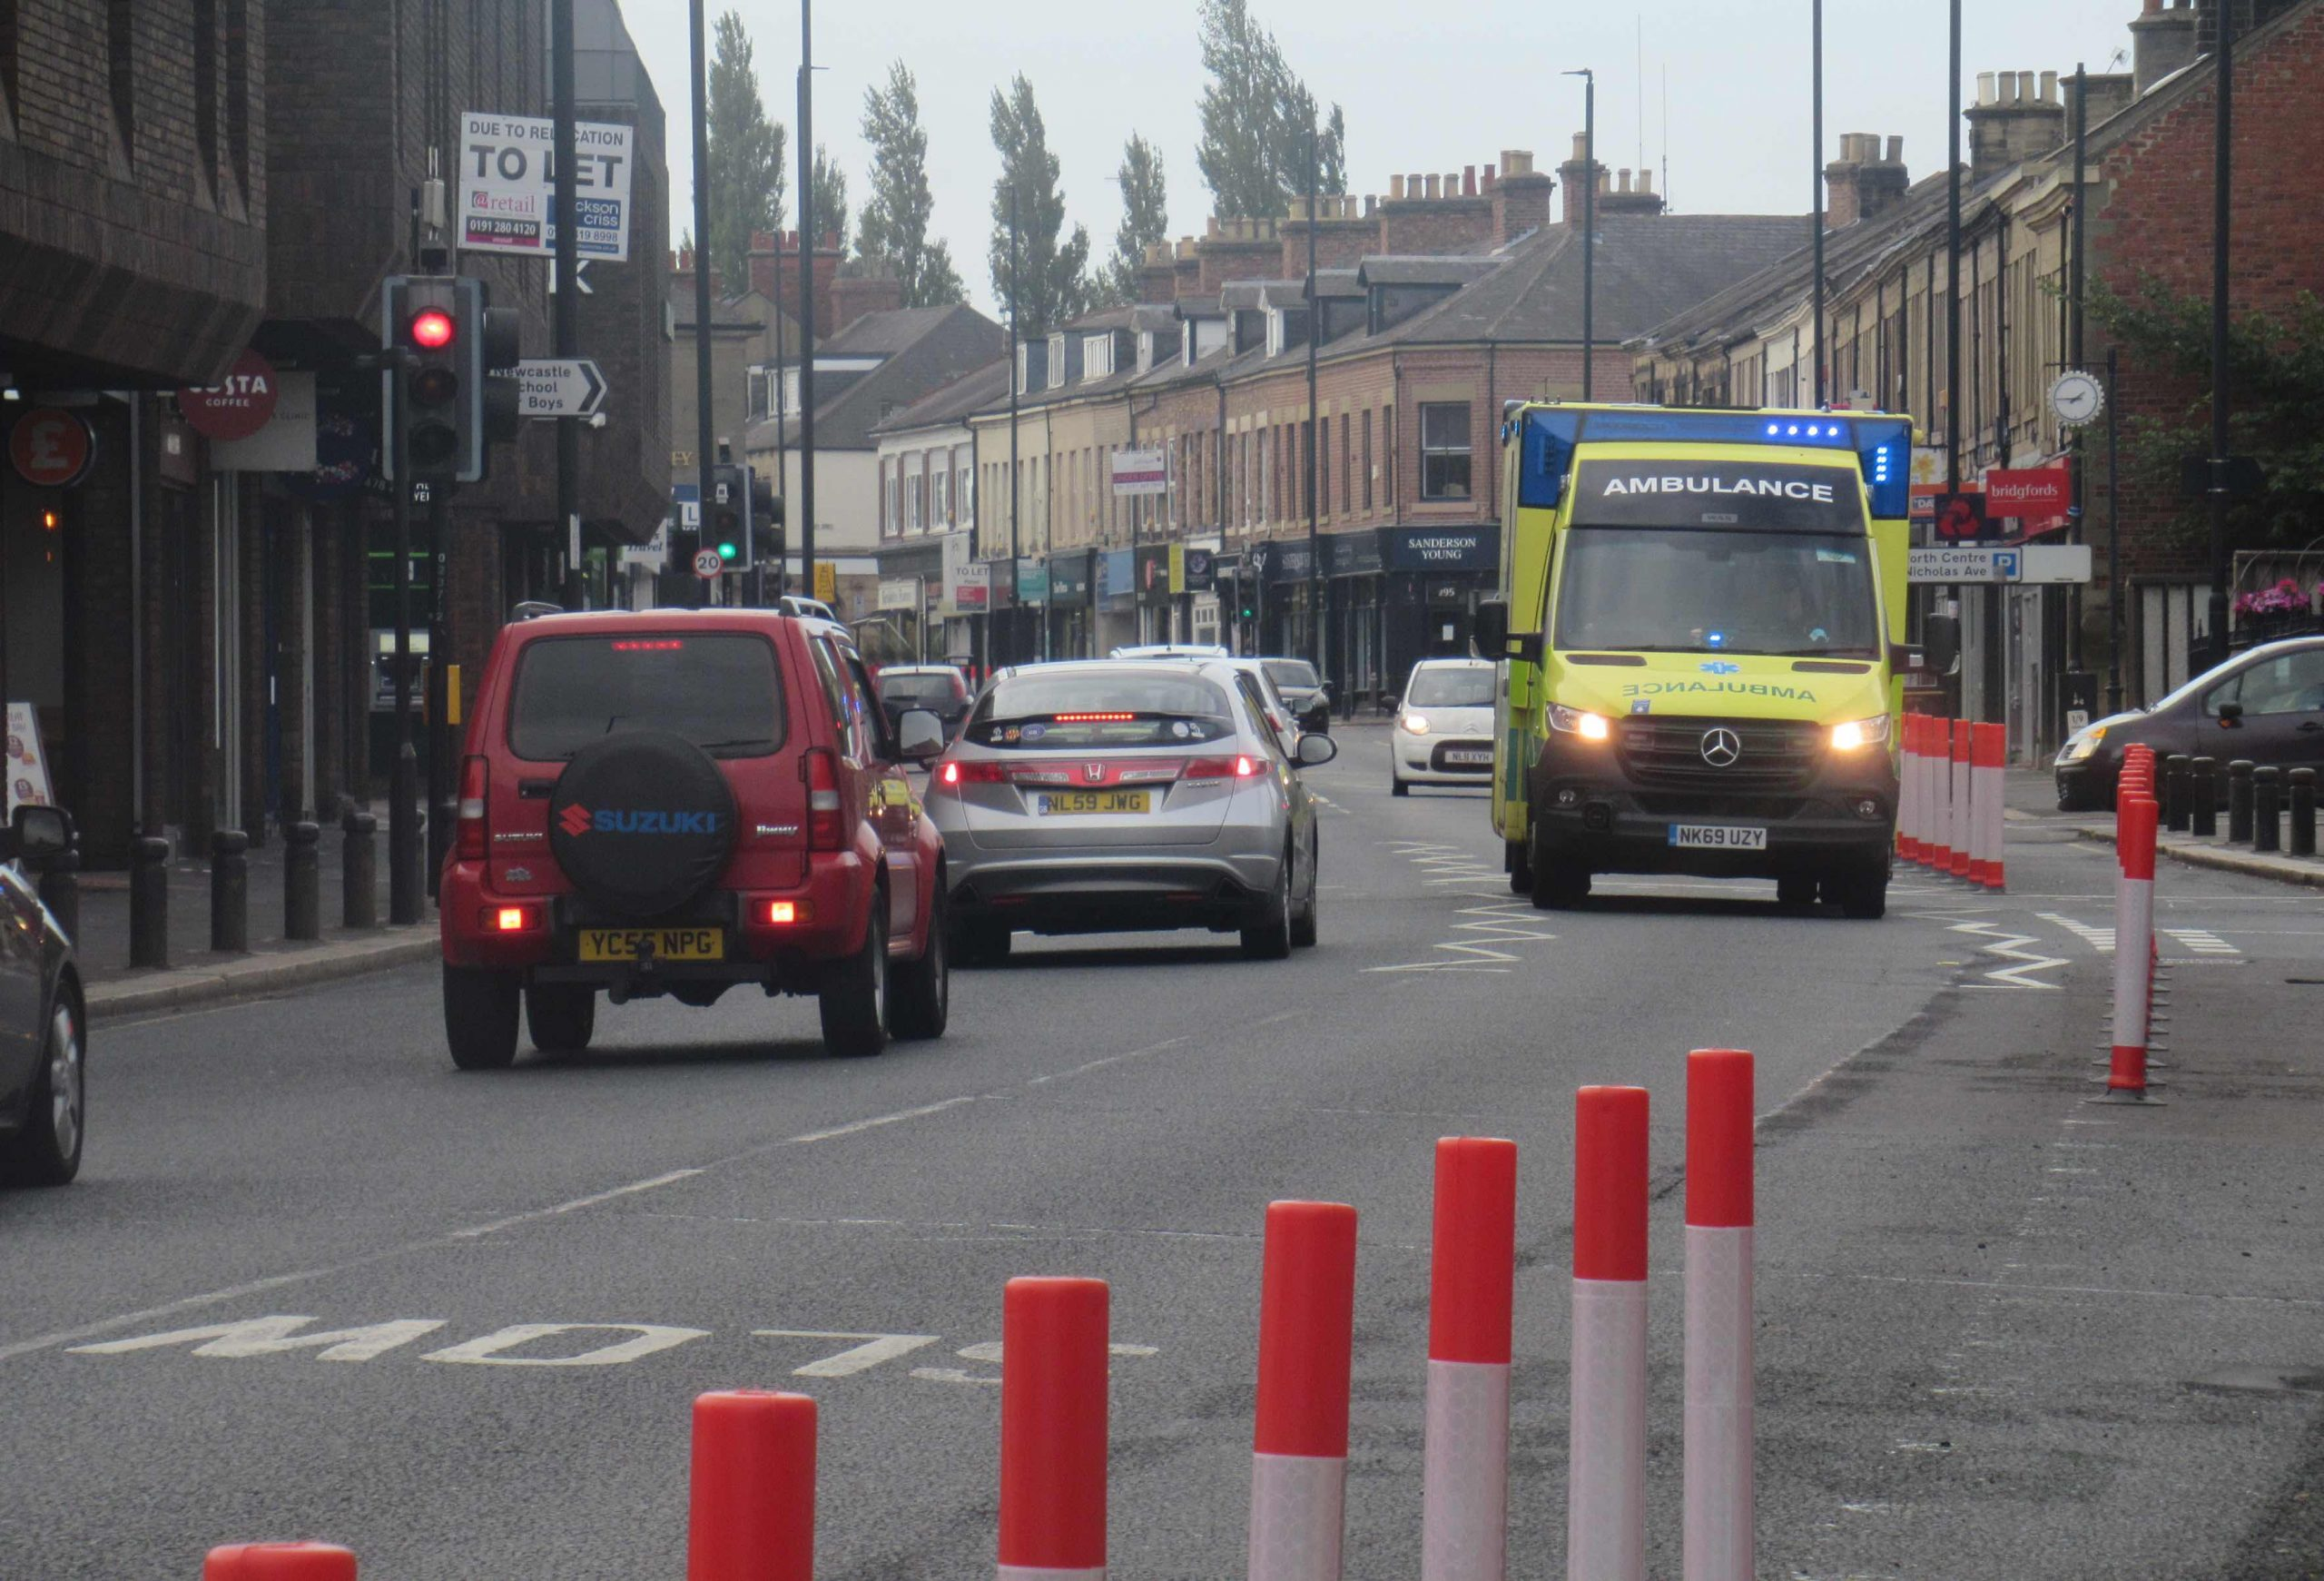 Ambulance heading north by Gosforth Shopping Centre